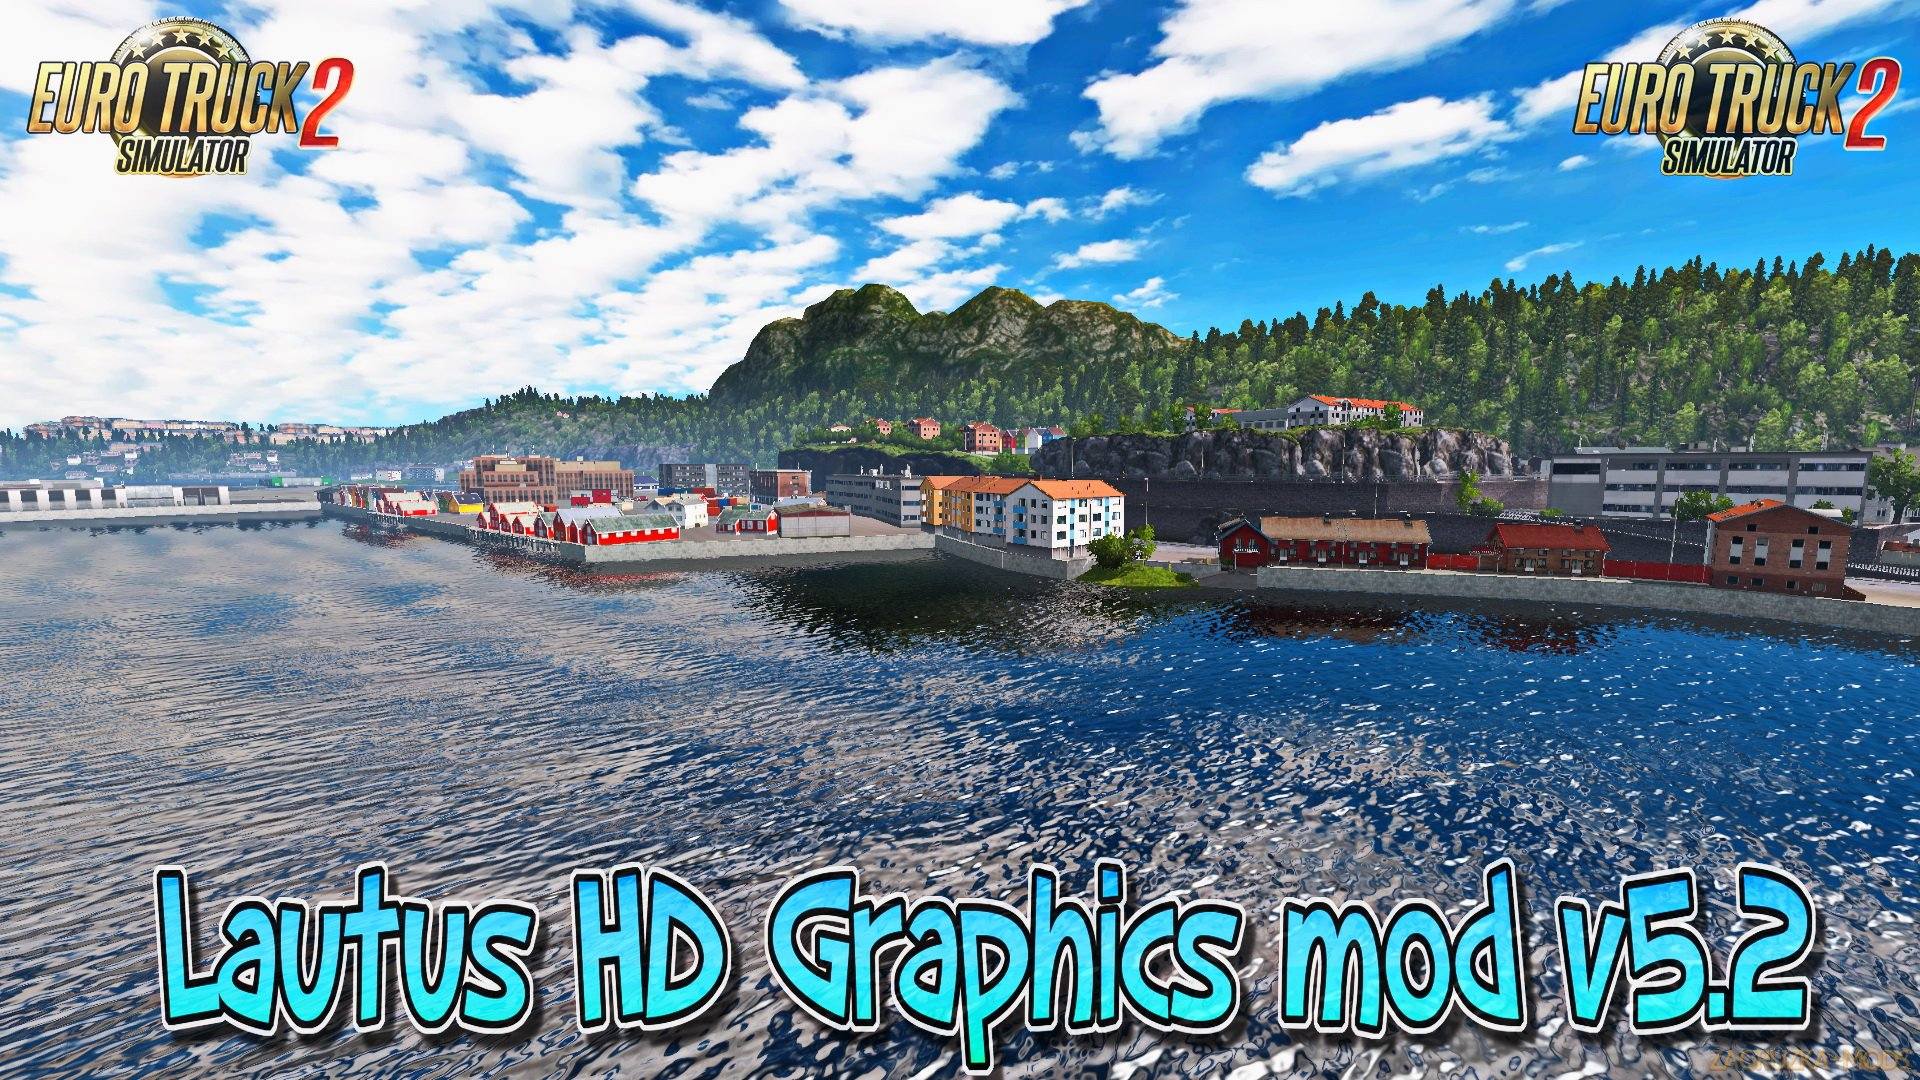 Lautus HD Graphics mod v5.2 [1.26.x]